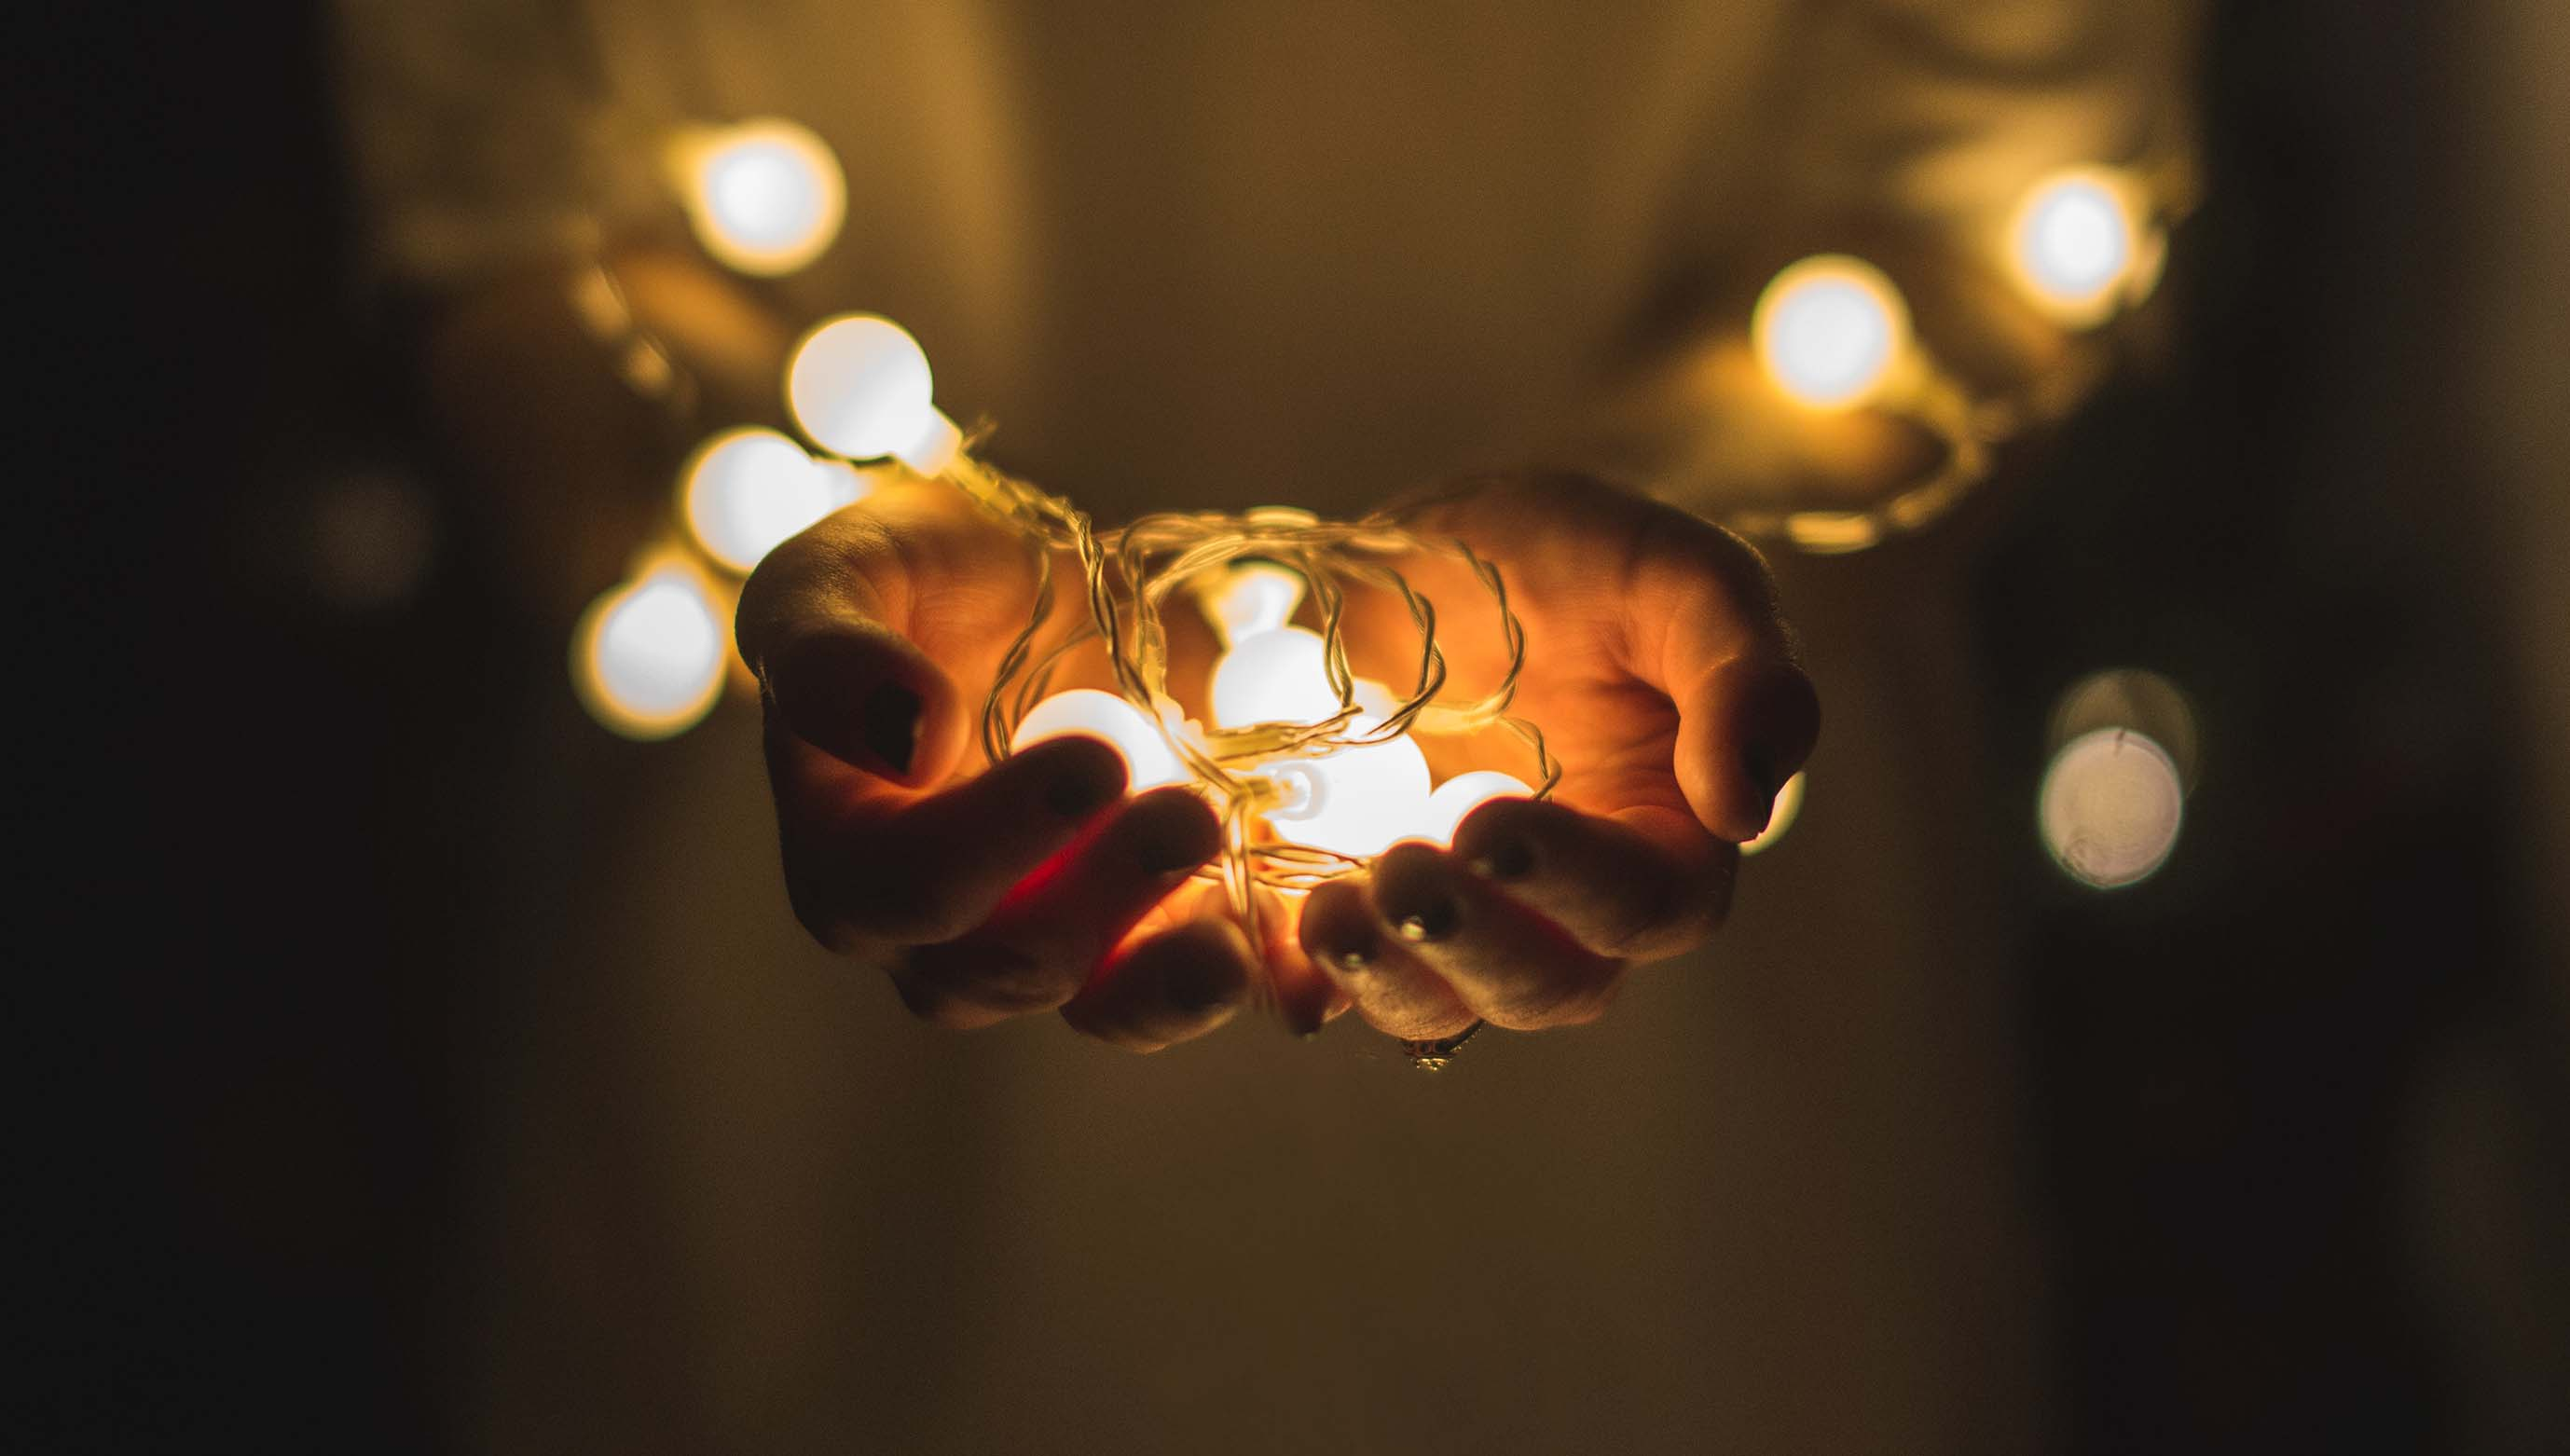 The transformative power of light